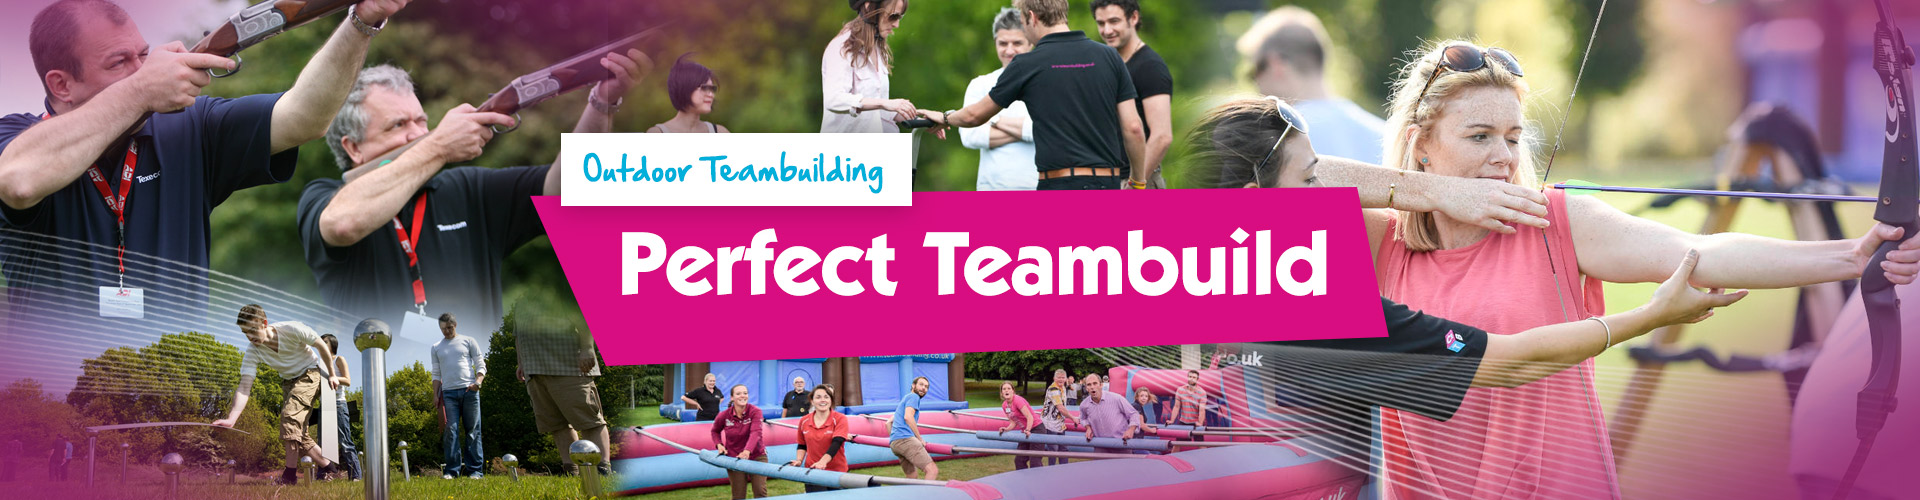 Teambuilding | Perfect Teambuild